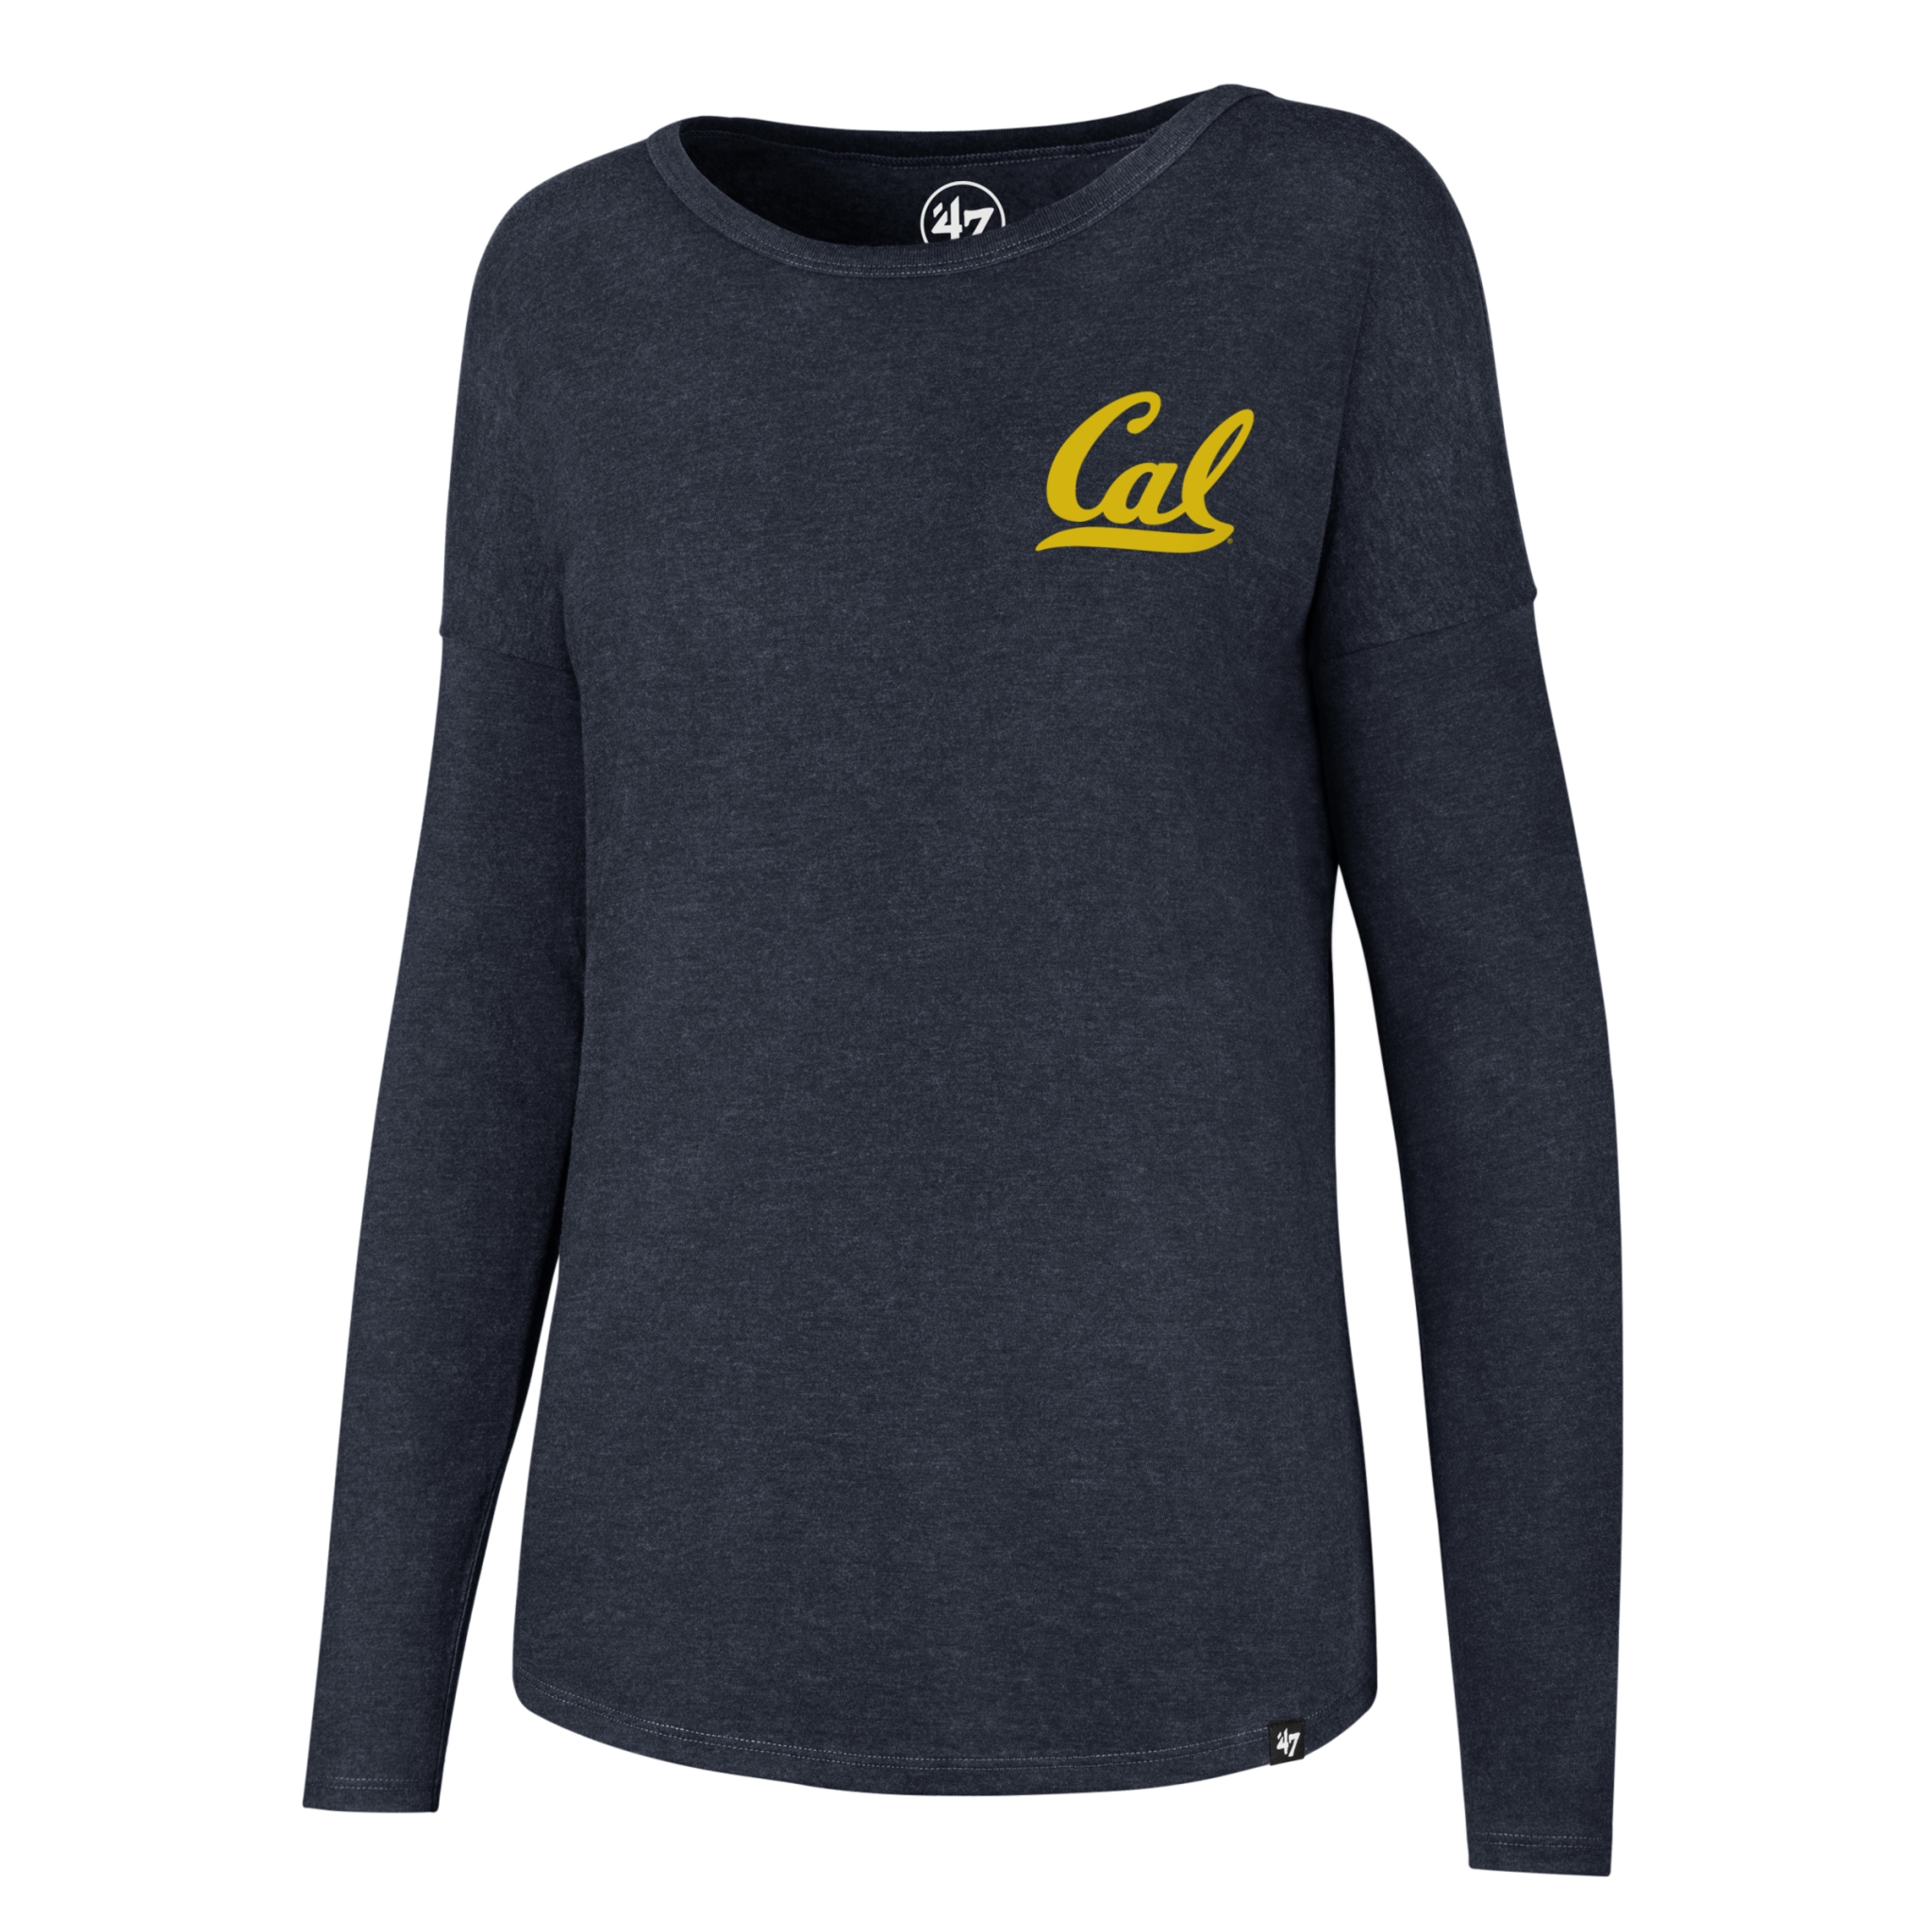 MD25-University of California Berkeley Golden Bears Club Courtside L/S Tee